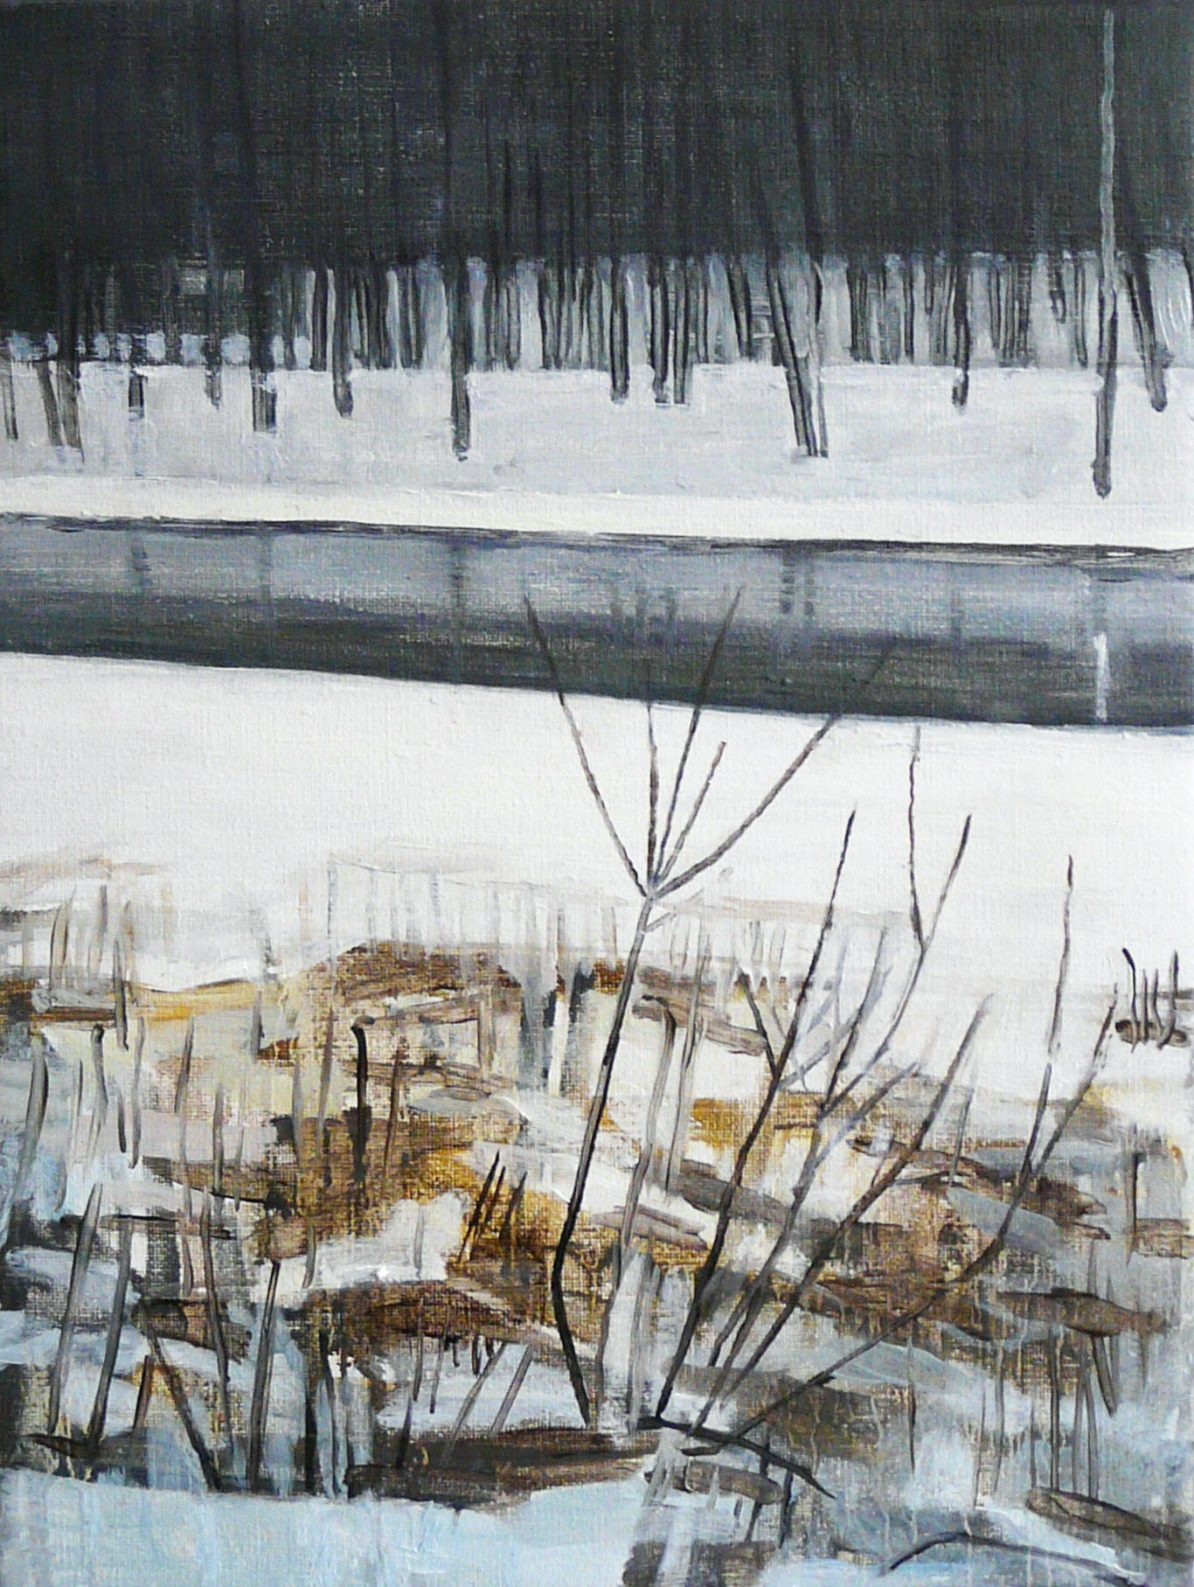 Riverside winter 2 (b), 2016. Oil, canvas. 40 x 30 cm